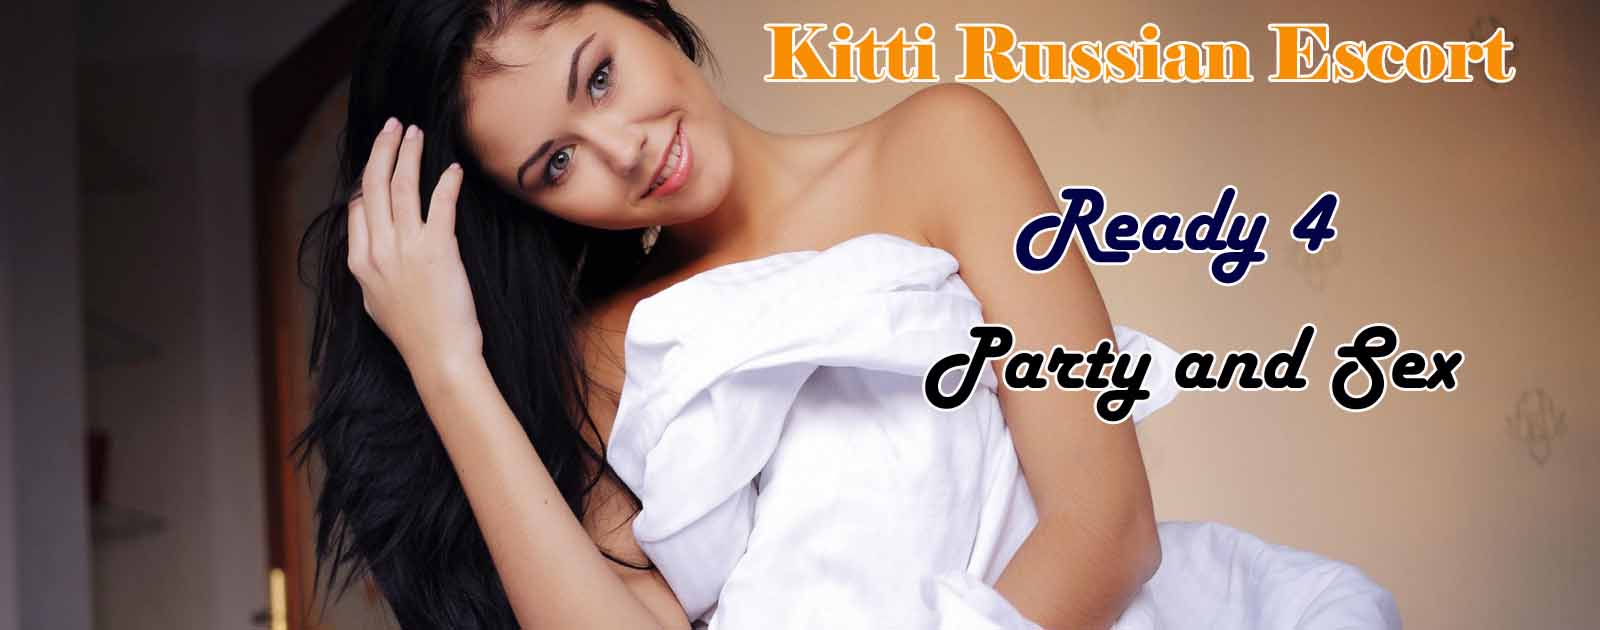 Russian Call Girls in Katwaria Sarai